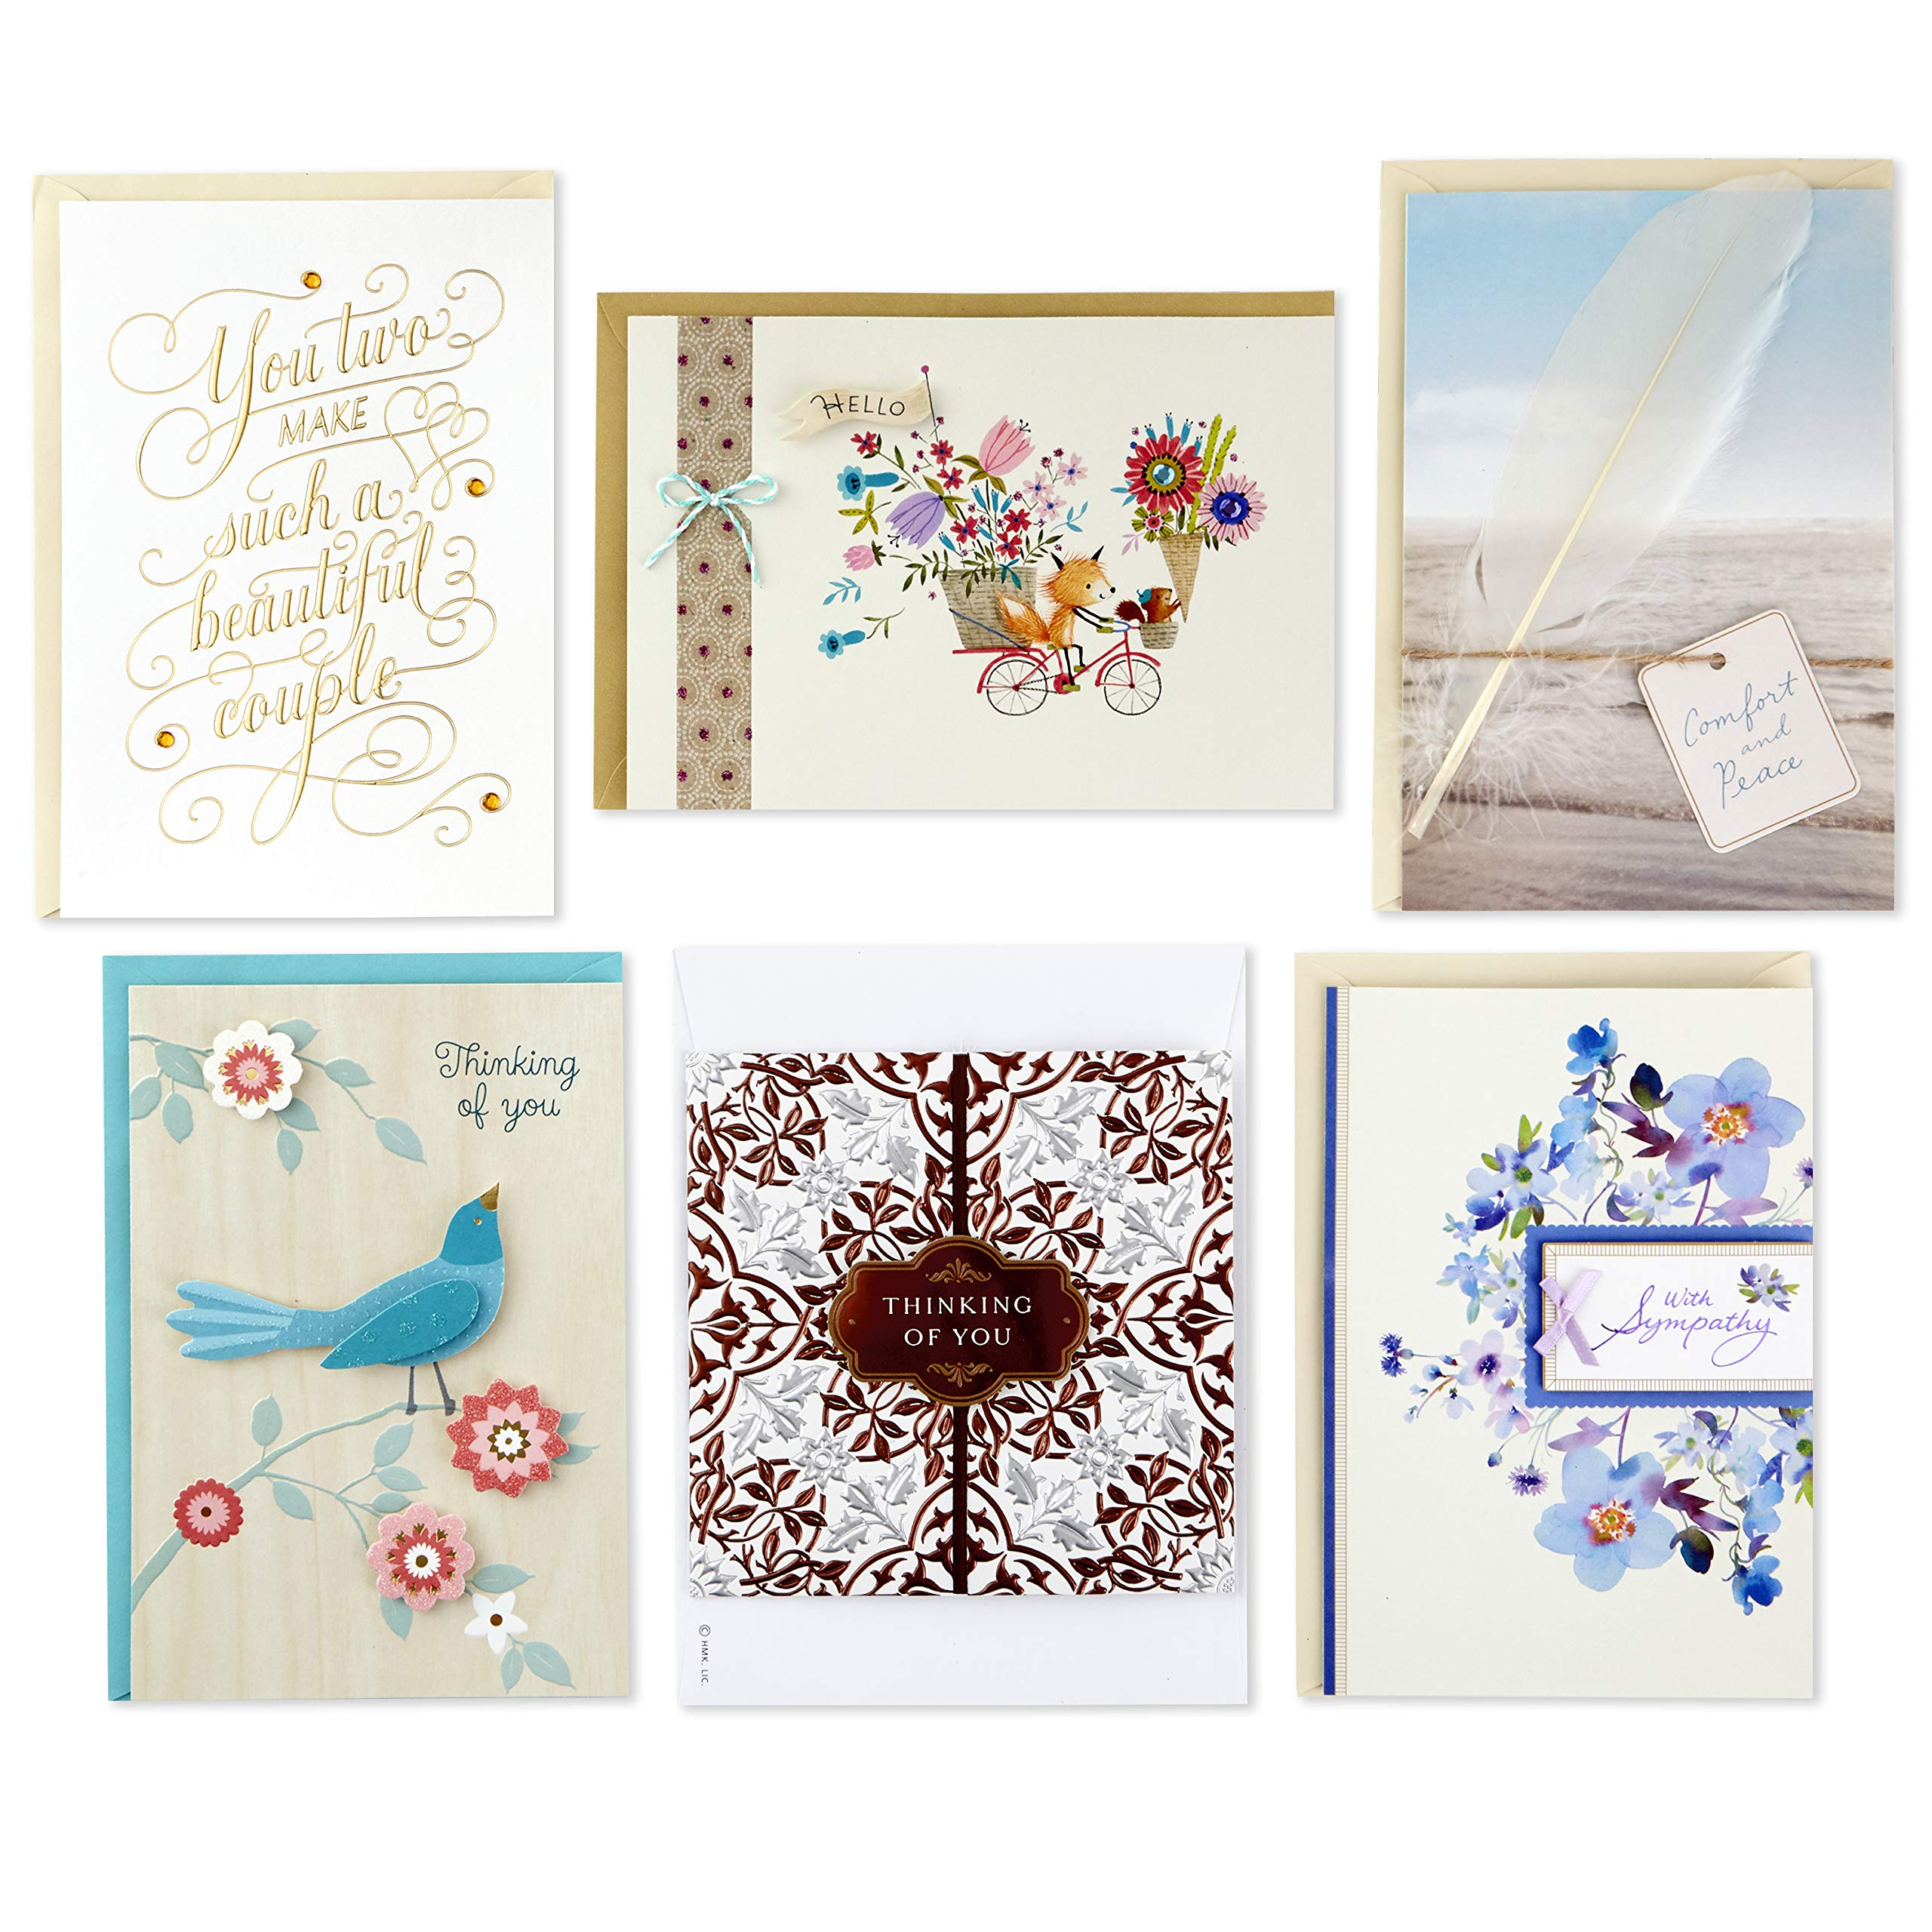 Hallmark Handmade All Occasion Boxed Greeting Card Assortment, Modern Floral (Pack of 24)-Birthday Cards, Baby Shower Cards, Wedding Cards, Sympathy Cards, Thinking of You Cards, Thank You Cards by Hallmark (Image #10)